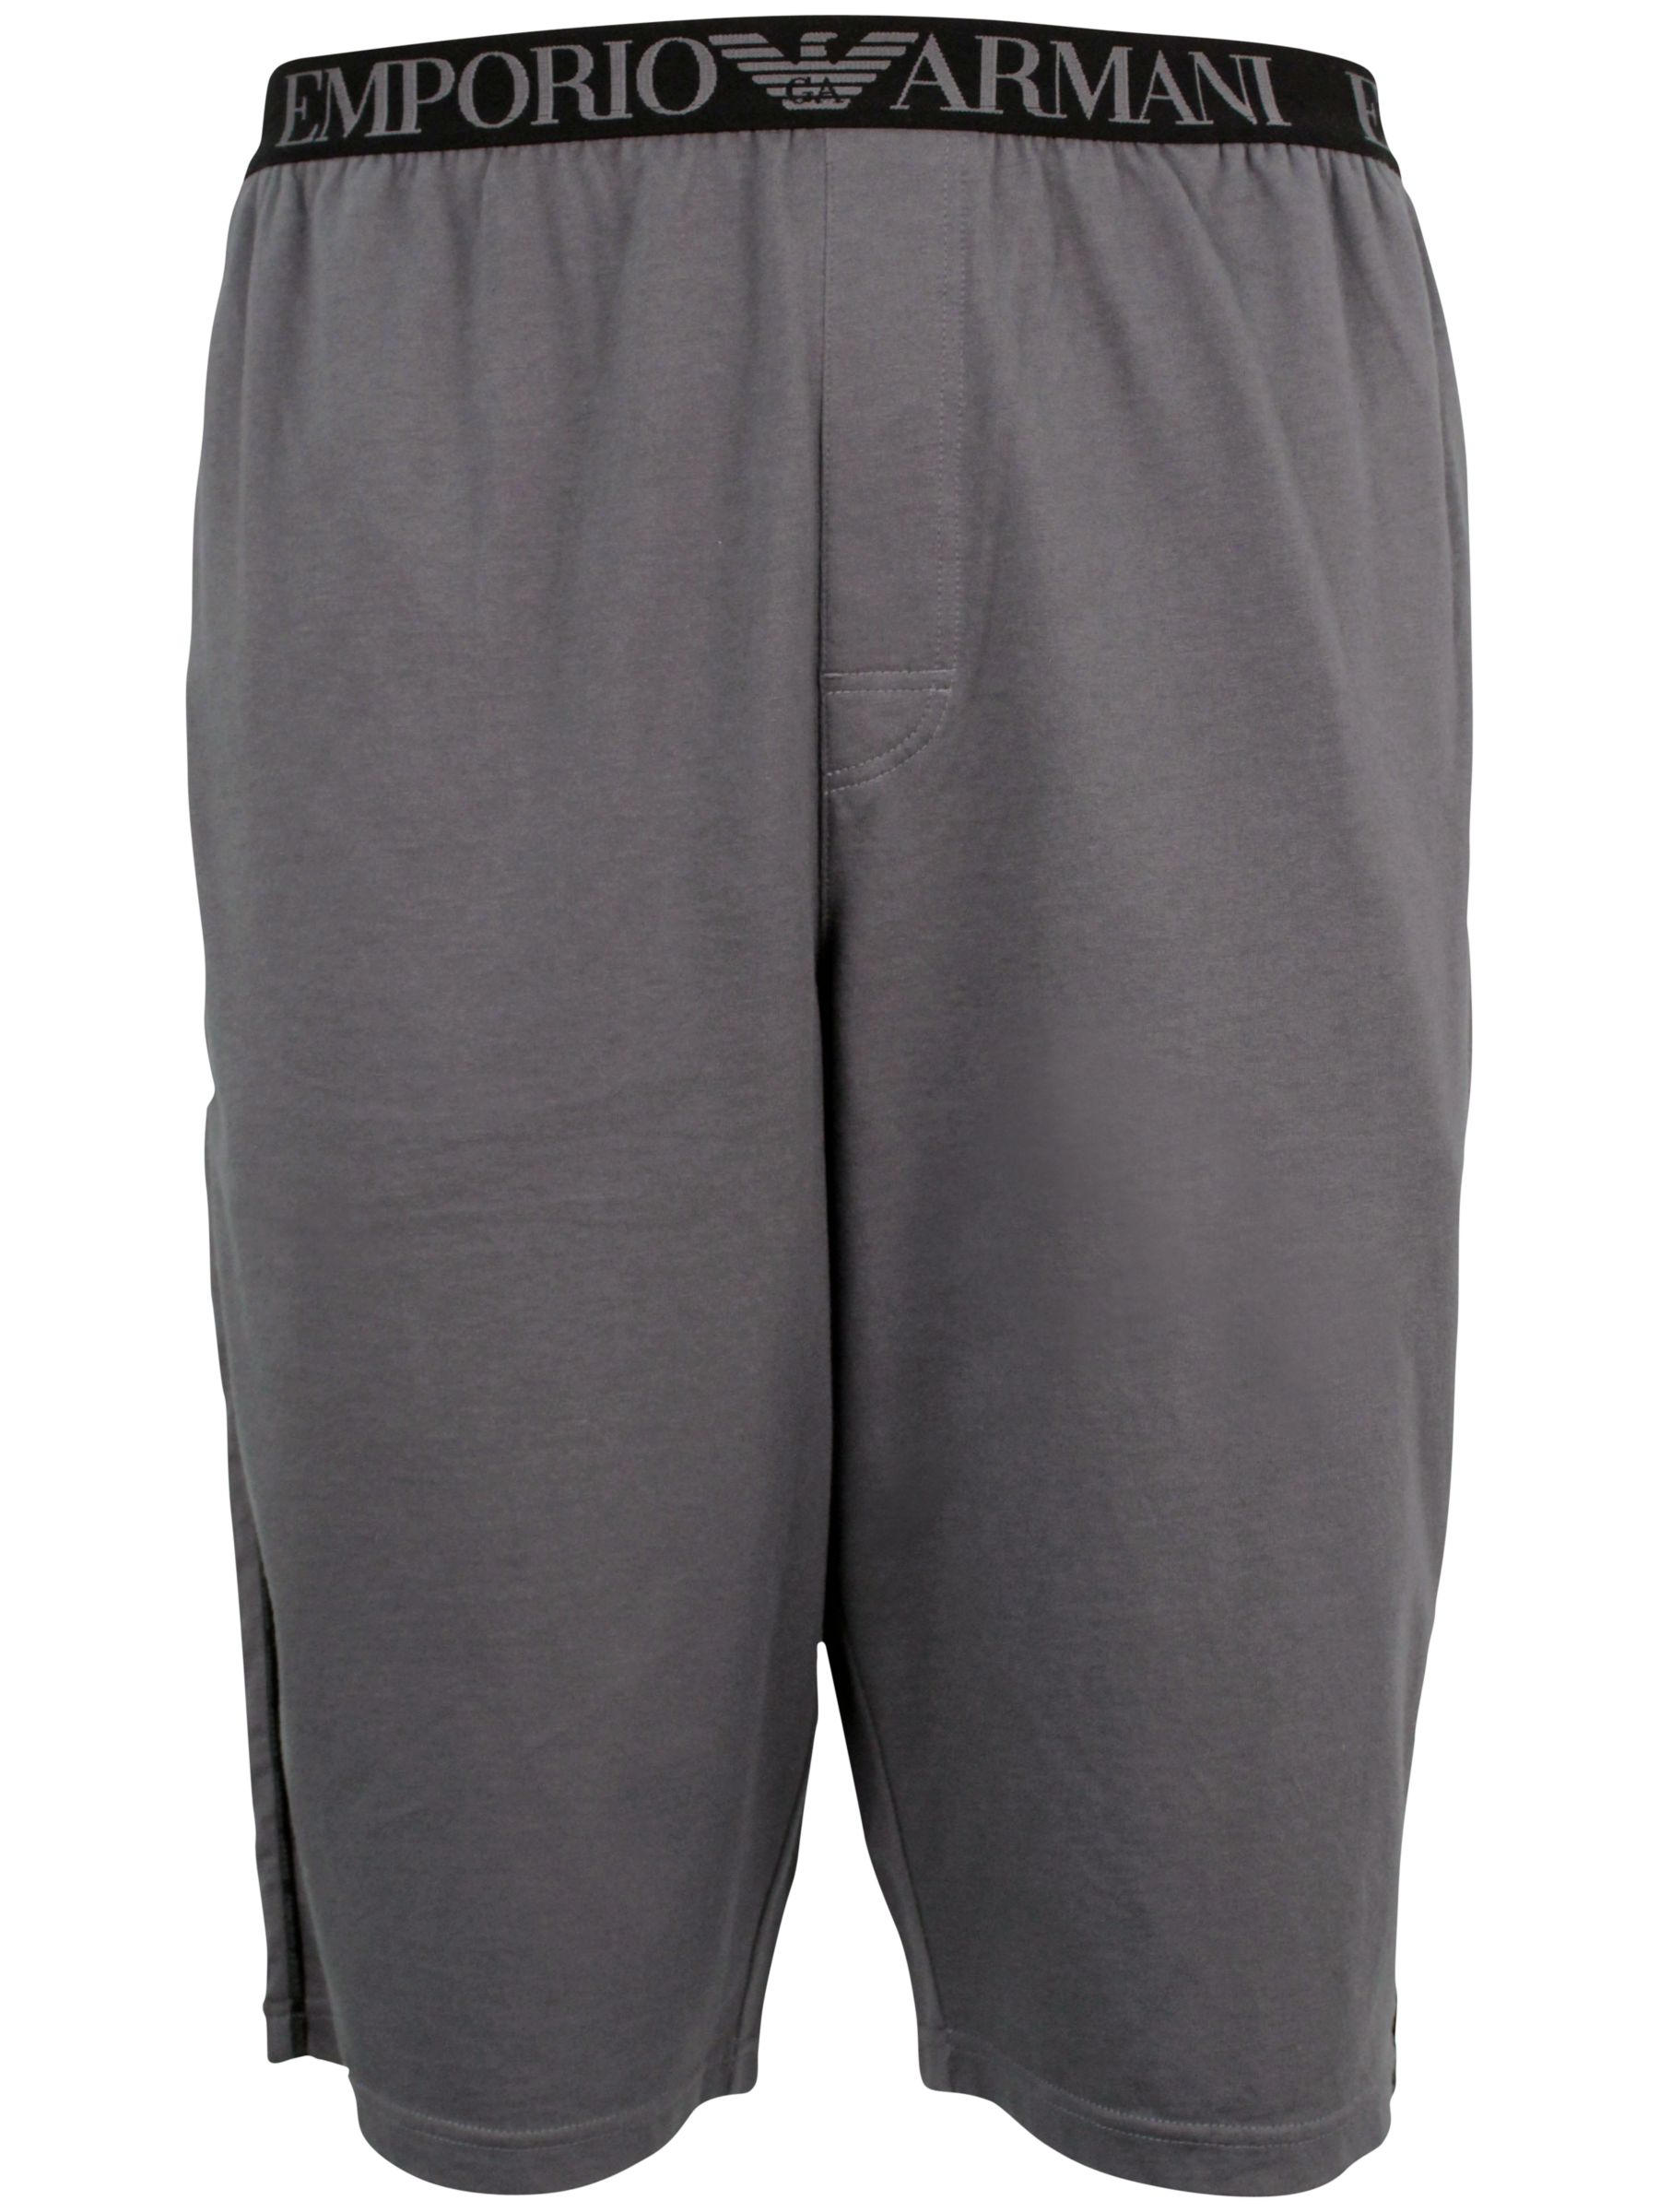 Emporio Armani Bermuda Cotton Shorts, Grey